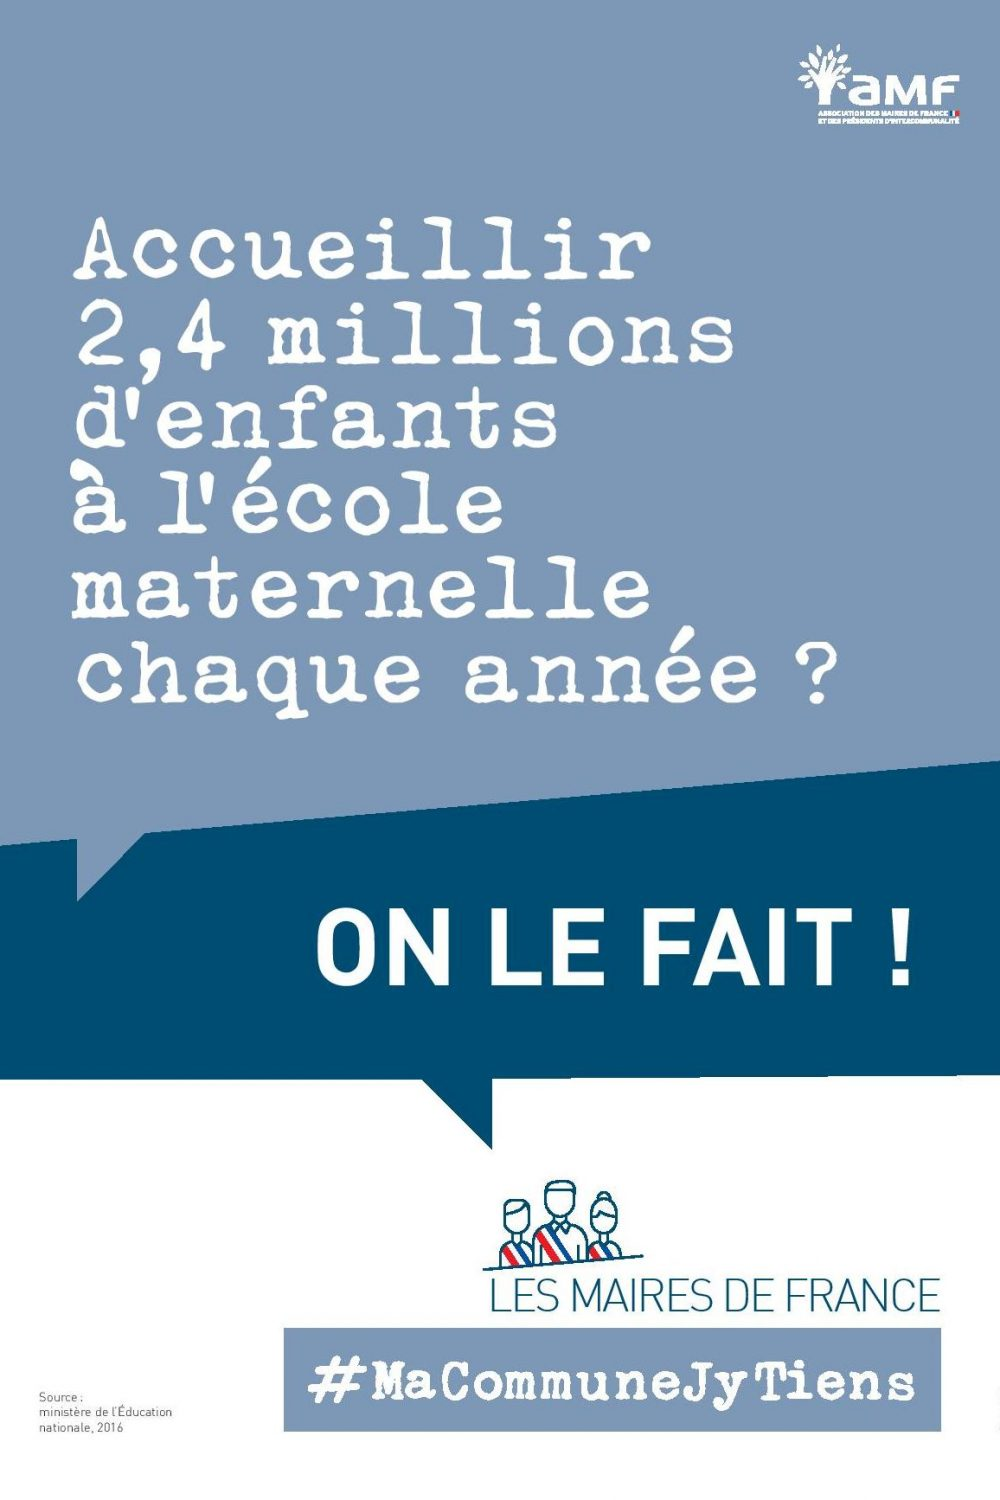 AMF_CAMPAGNE-TEMPS-1_AFFICHETTE_A4-FR_HD_11_Ecole-maternelle